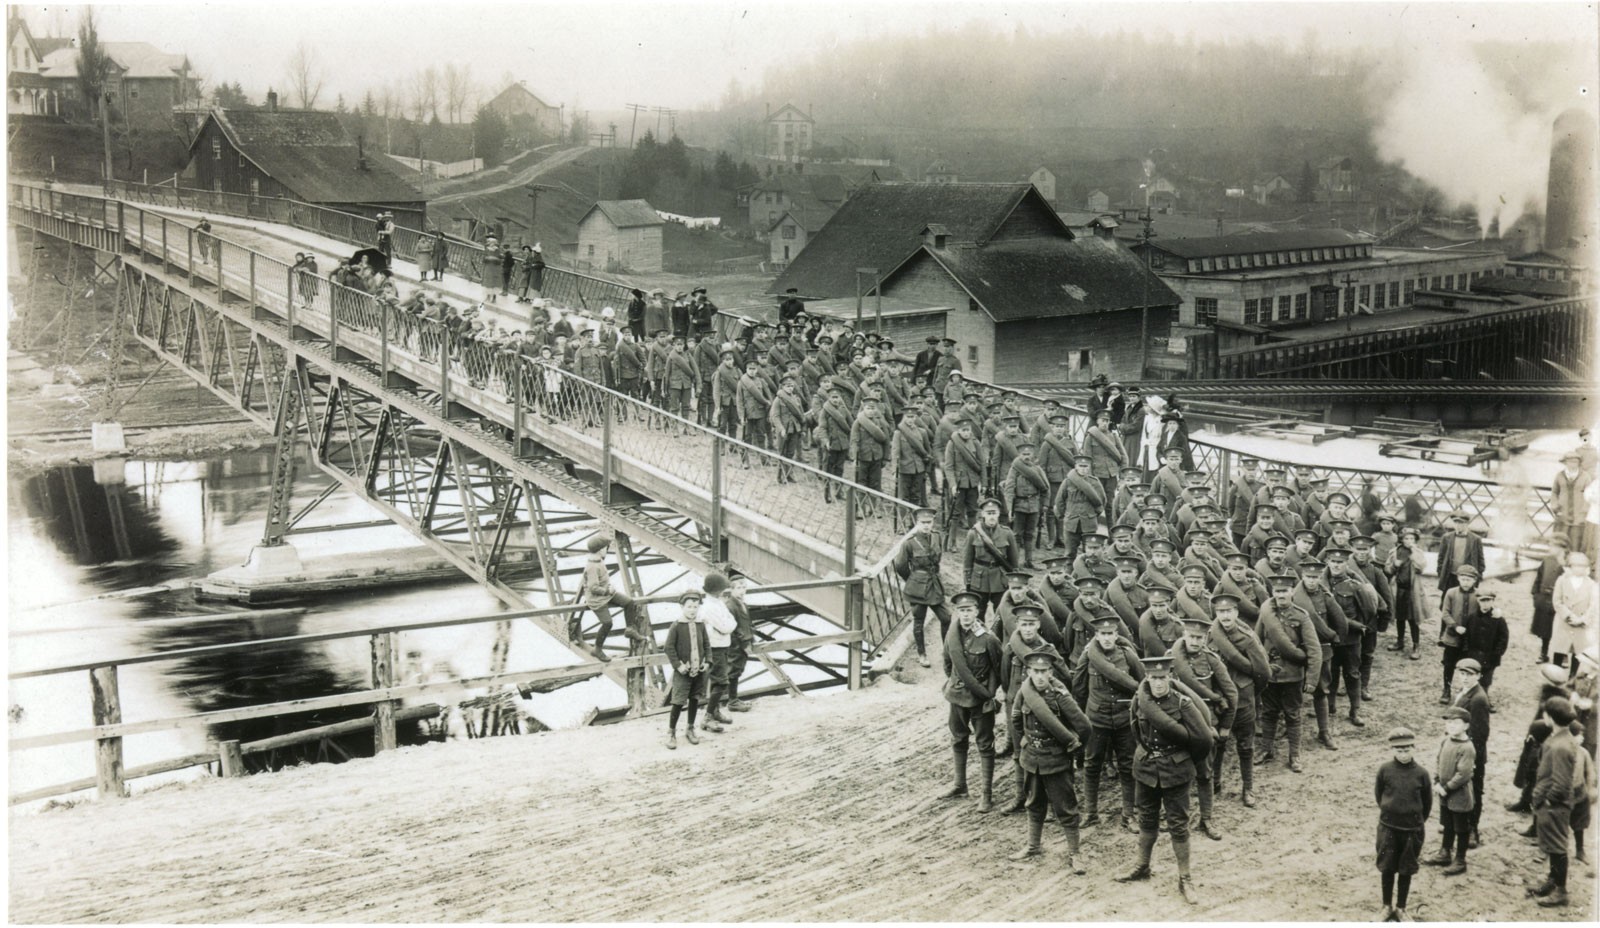 Women and children stand on the sidelines as a battalion marches through the town. <br>Courtesy the Sundridge - Strong Union Public Library.